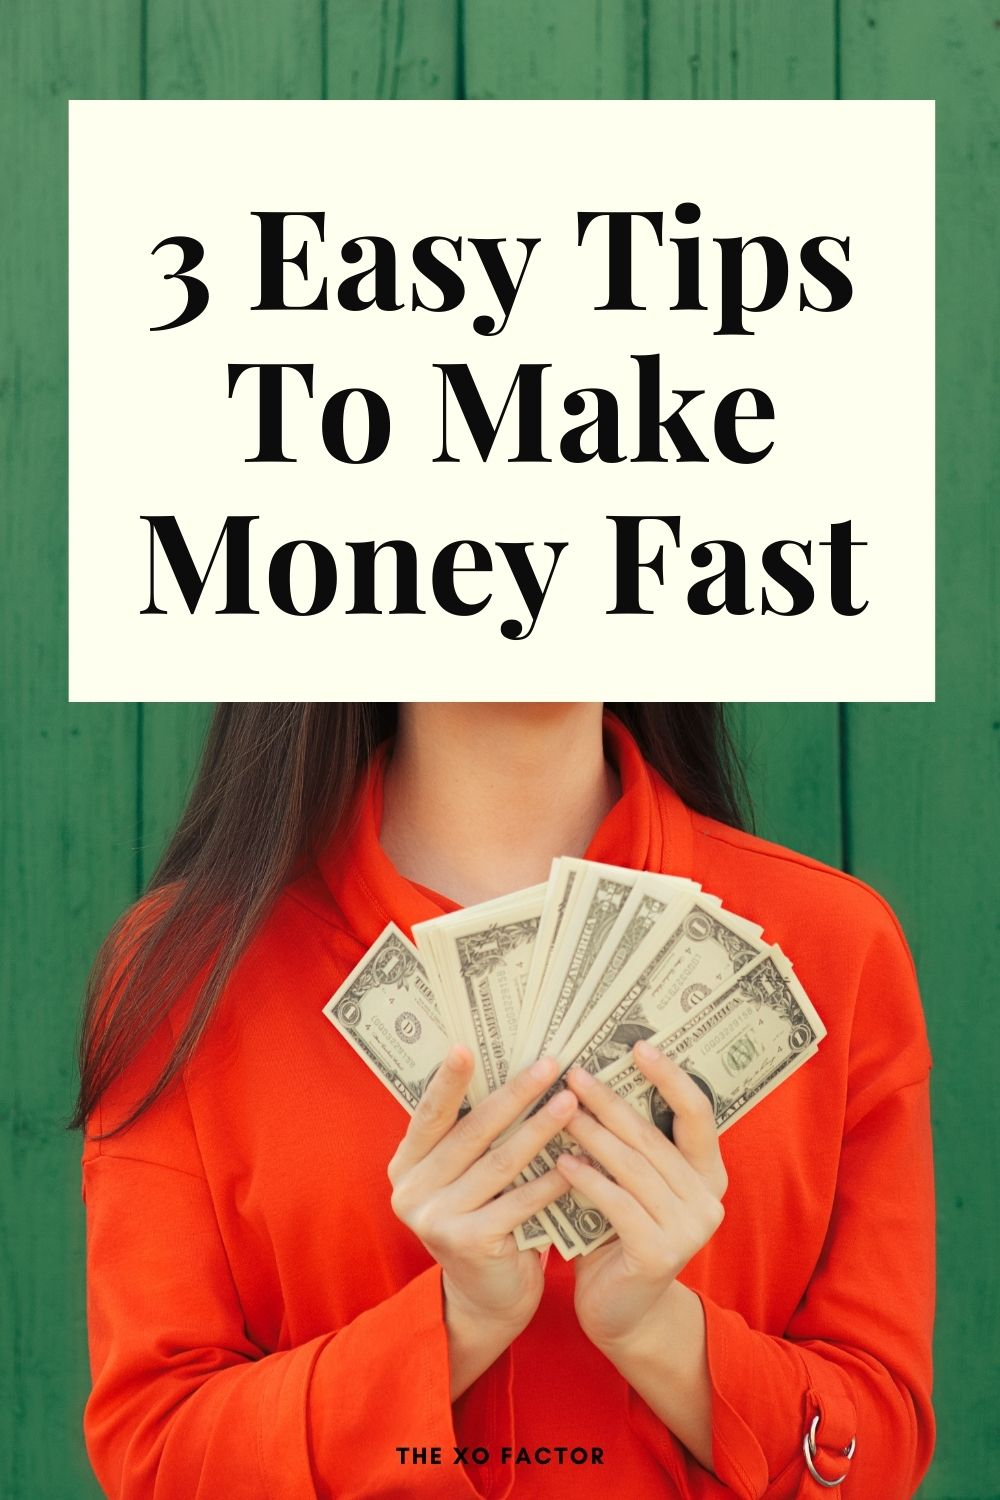 3 easy tips to make money fast